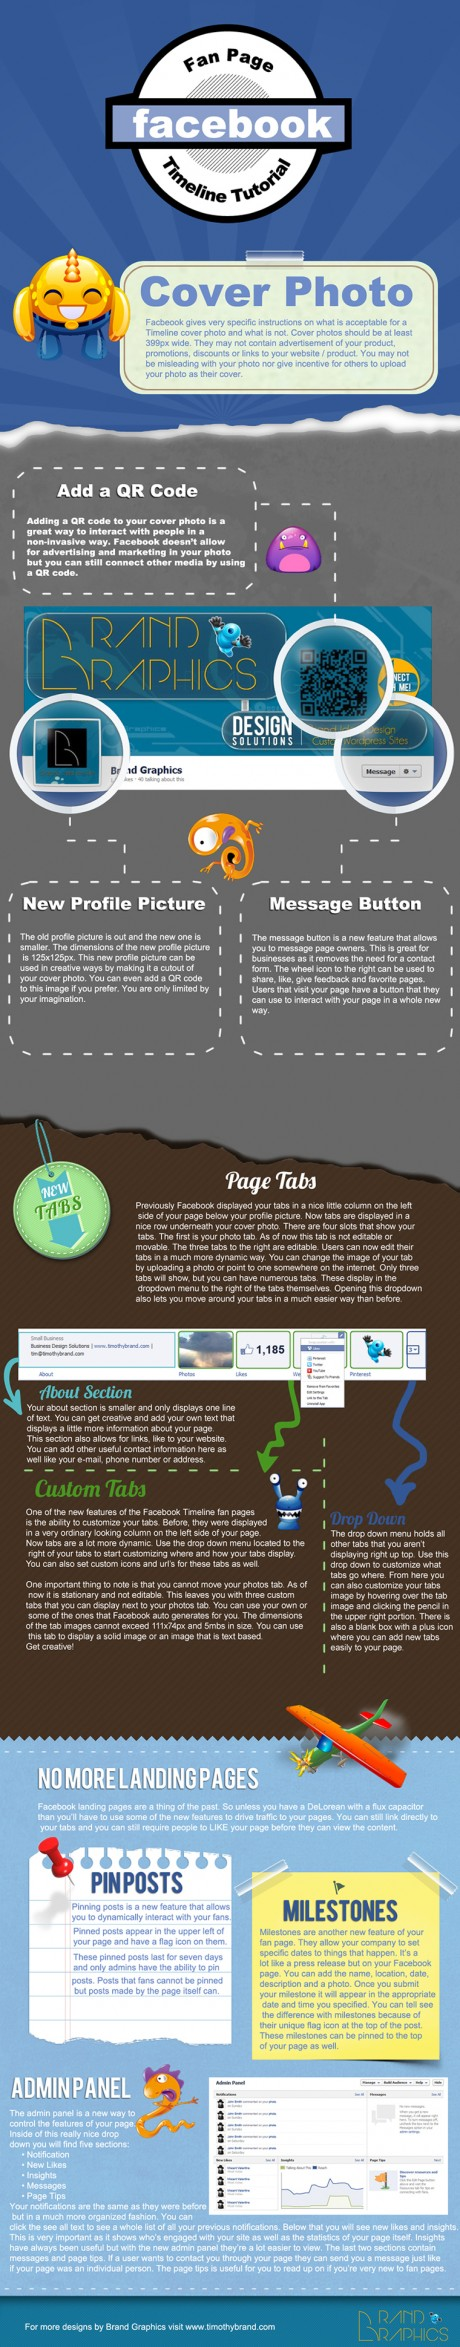 Infographic: Facebook Fan Page Timeline Tutorial